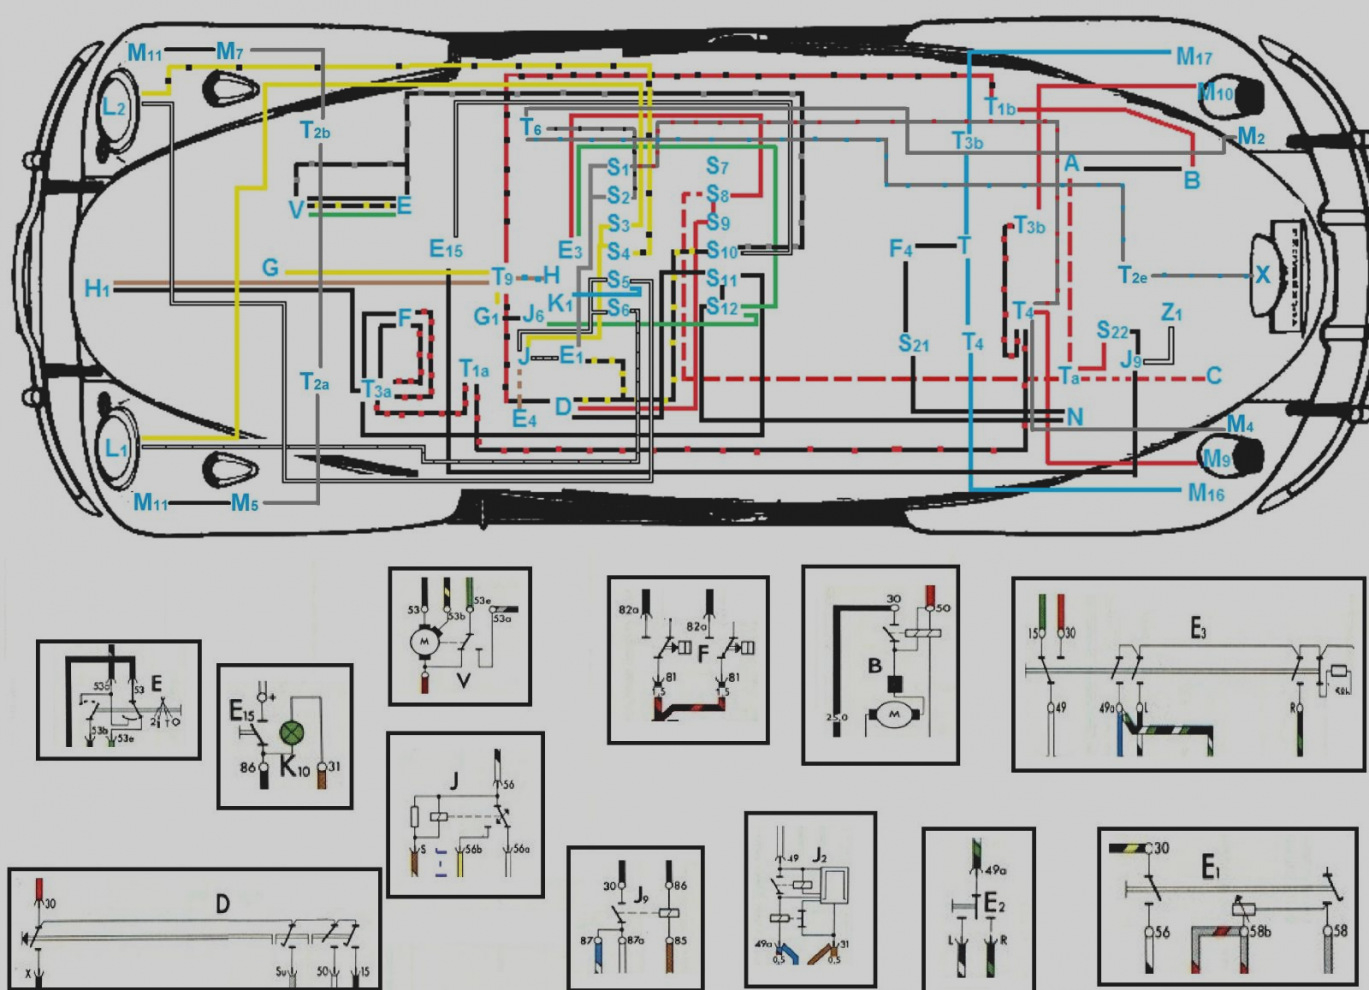 1969 vw beetle ignition coil wiring diagram 1988 honda crx 2001 gallery sample